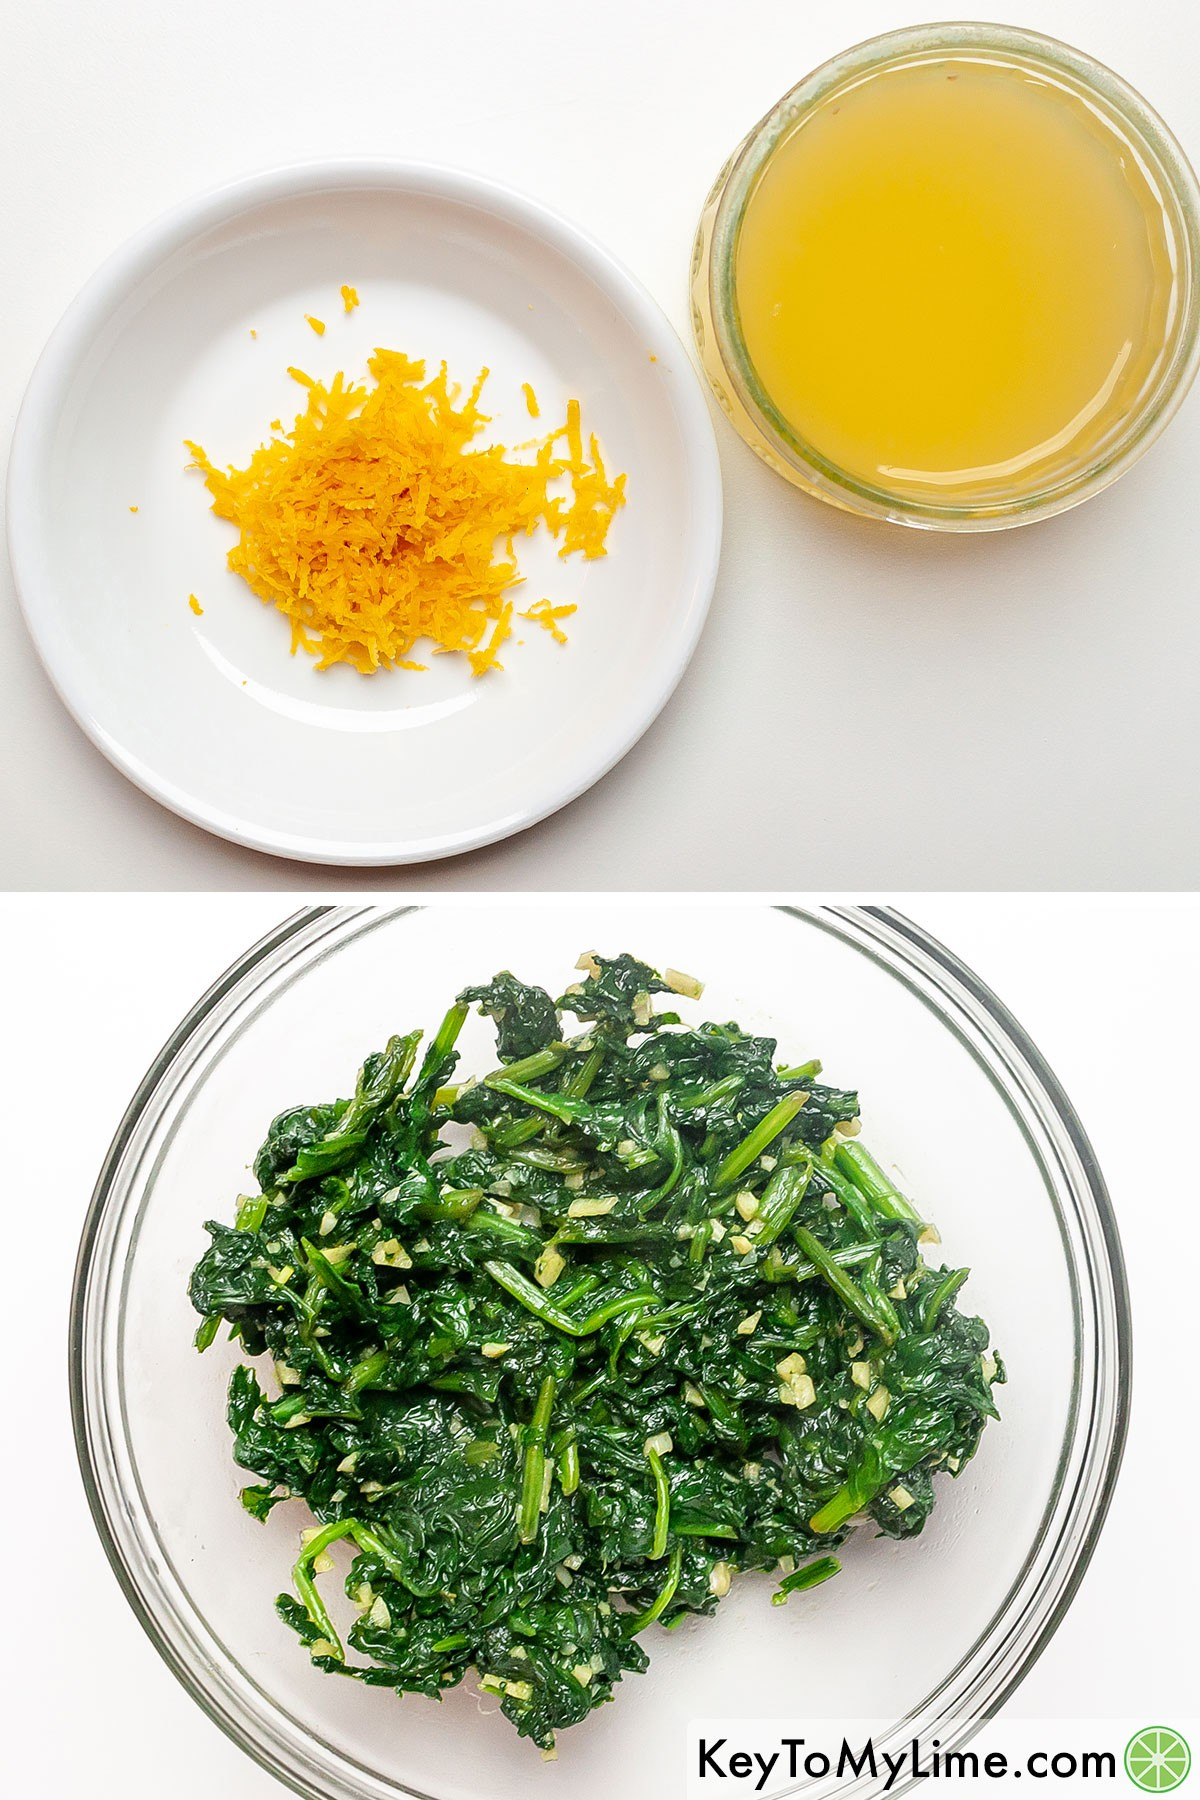 Lemon zest, lemon juice, and sauteed garlic with spinach before adding it to the simple ricotta pasta sauce.